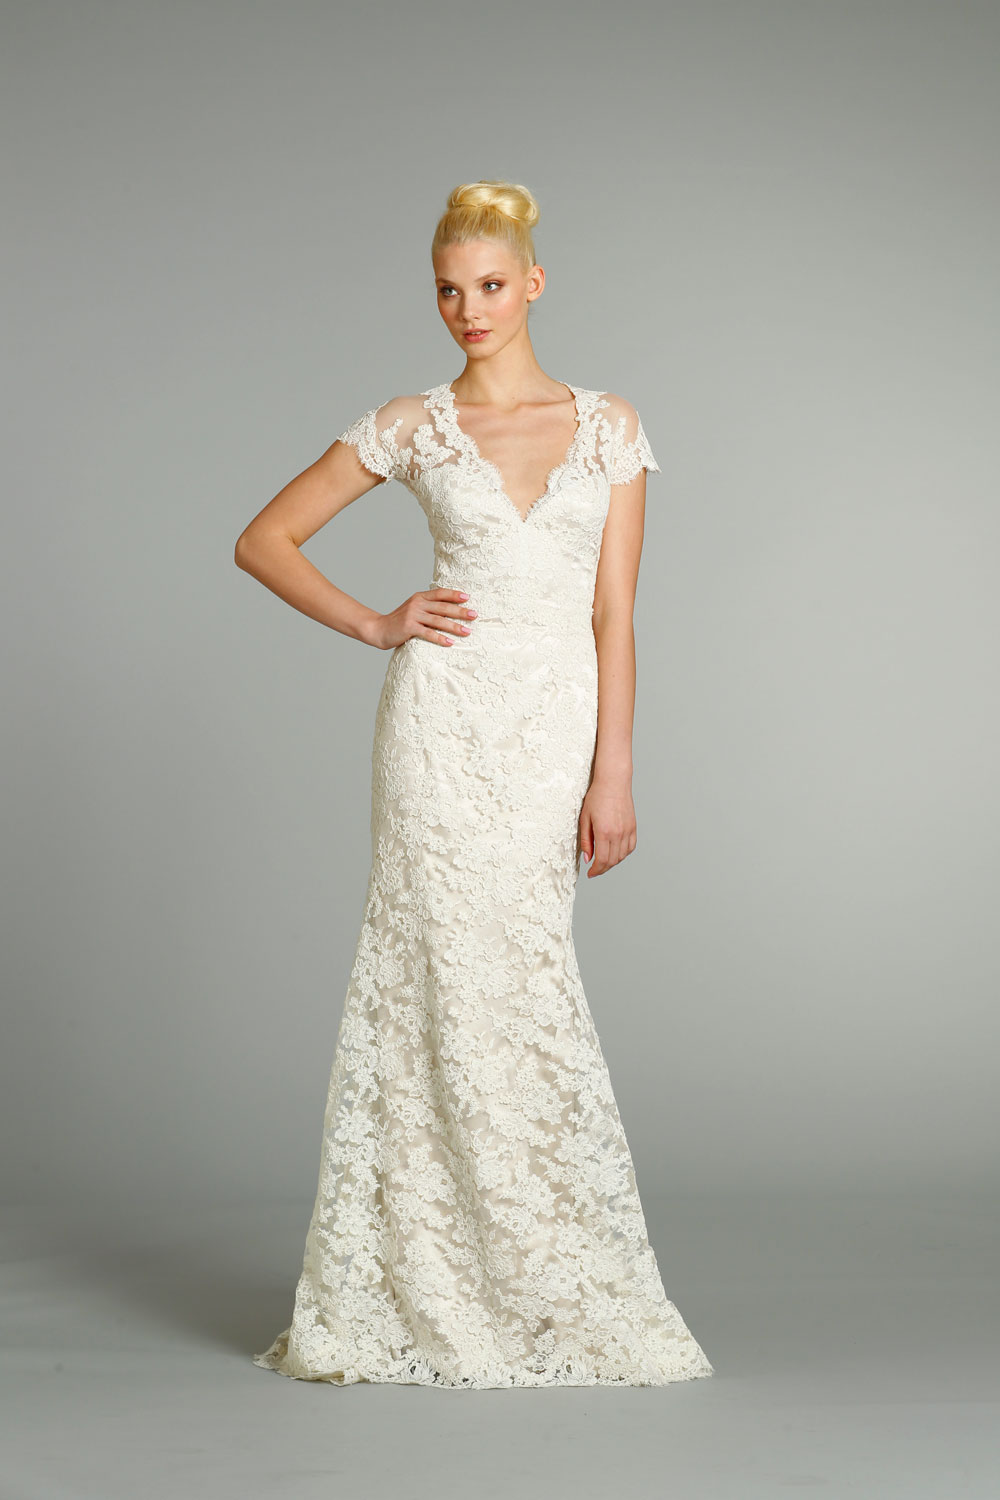 Gorgeous and stylish fall wedding dresses to inspire you for Lace dresses for weddings